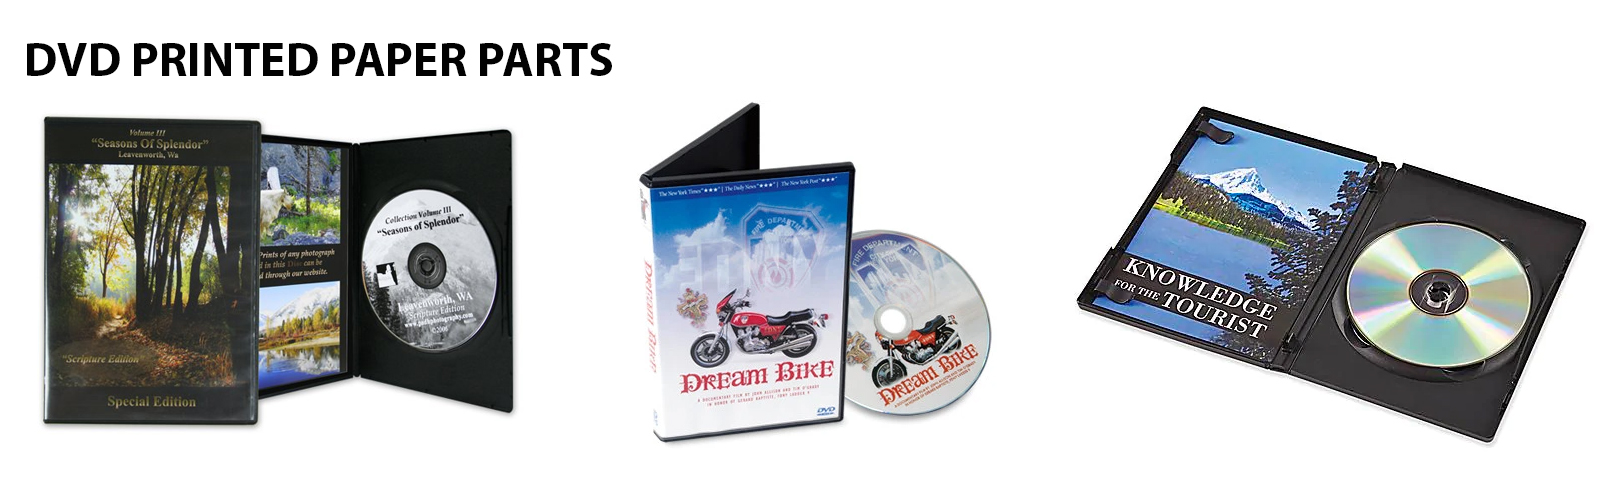 DVDs in Black or Clear Cases in Oxfordshire UK